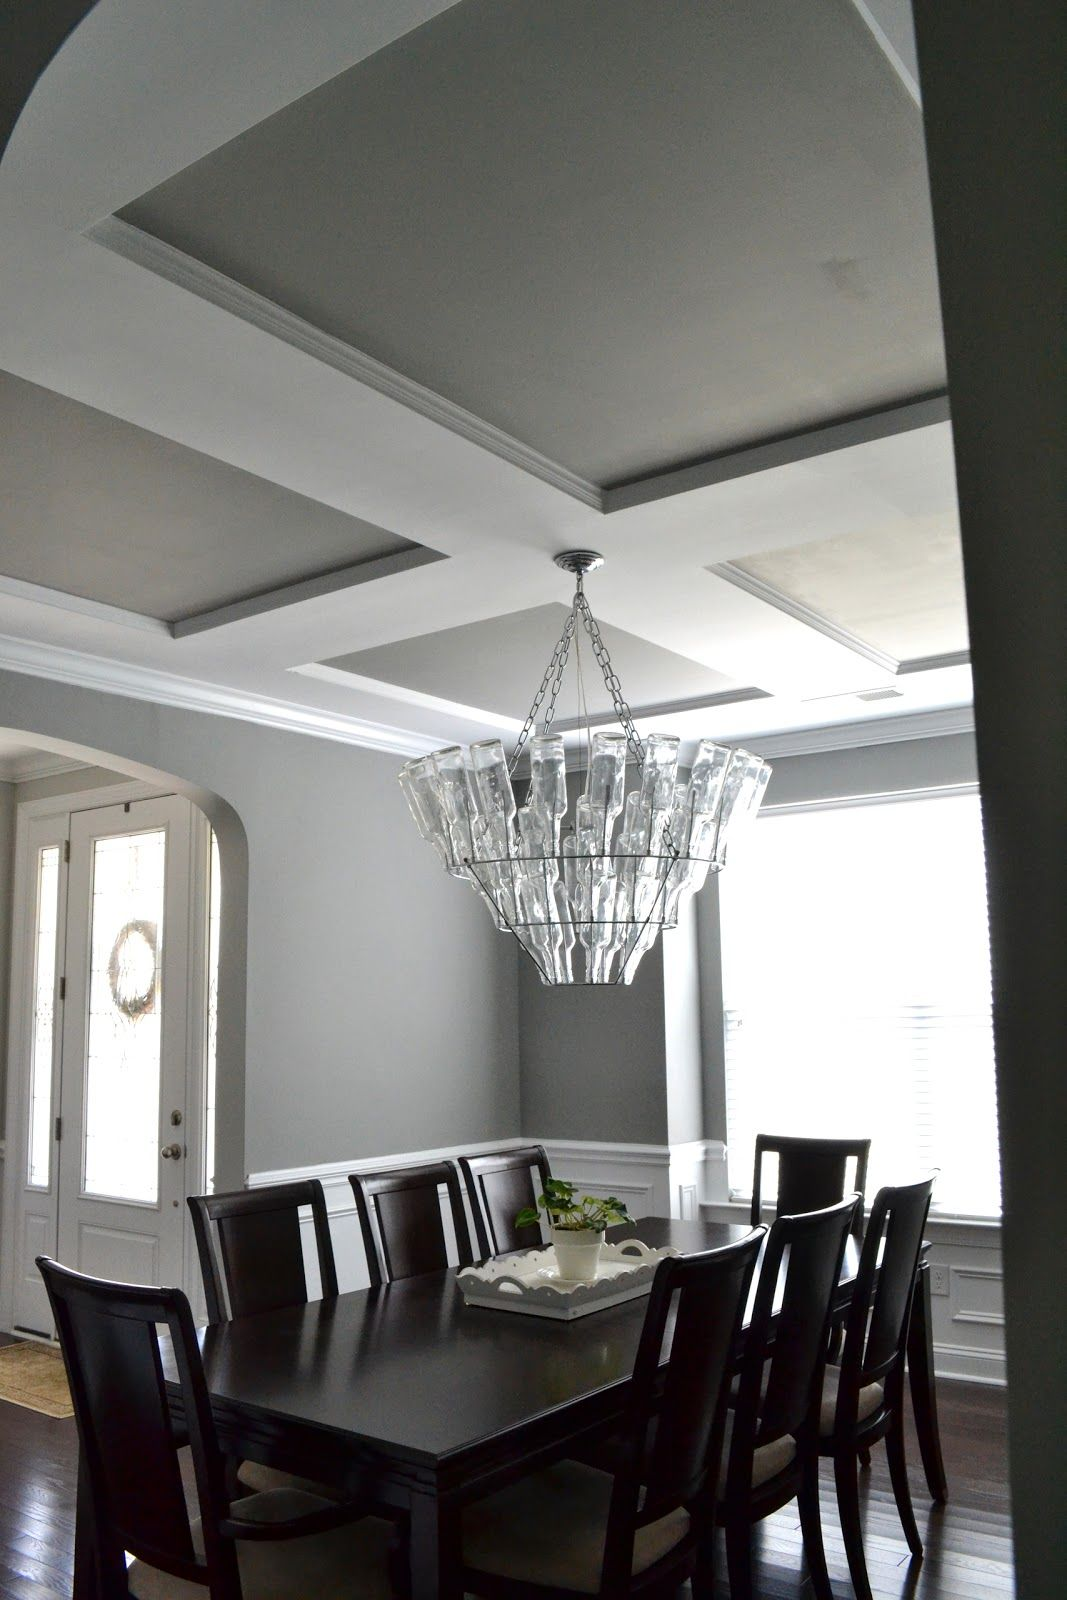 i'm back with another dining room update! you can see the chandelier